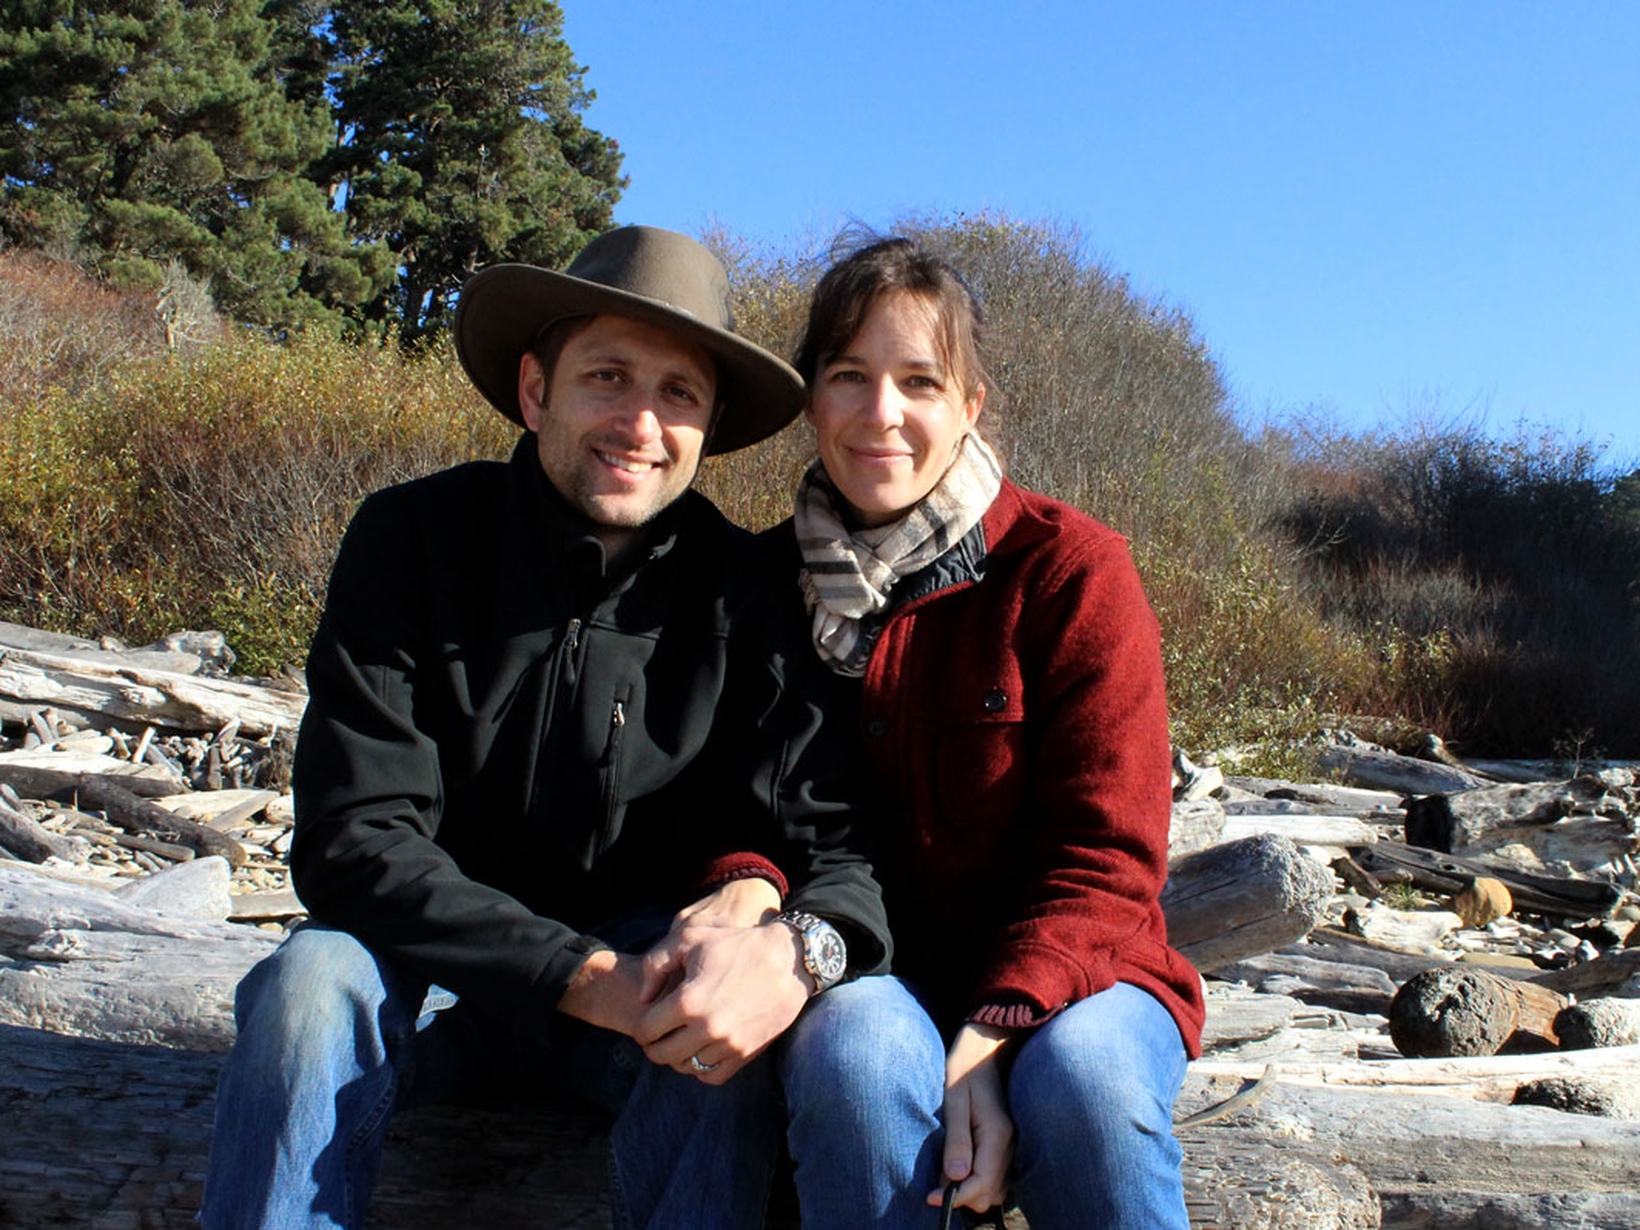 Kathryn & James from Missoula, Montana, United States